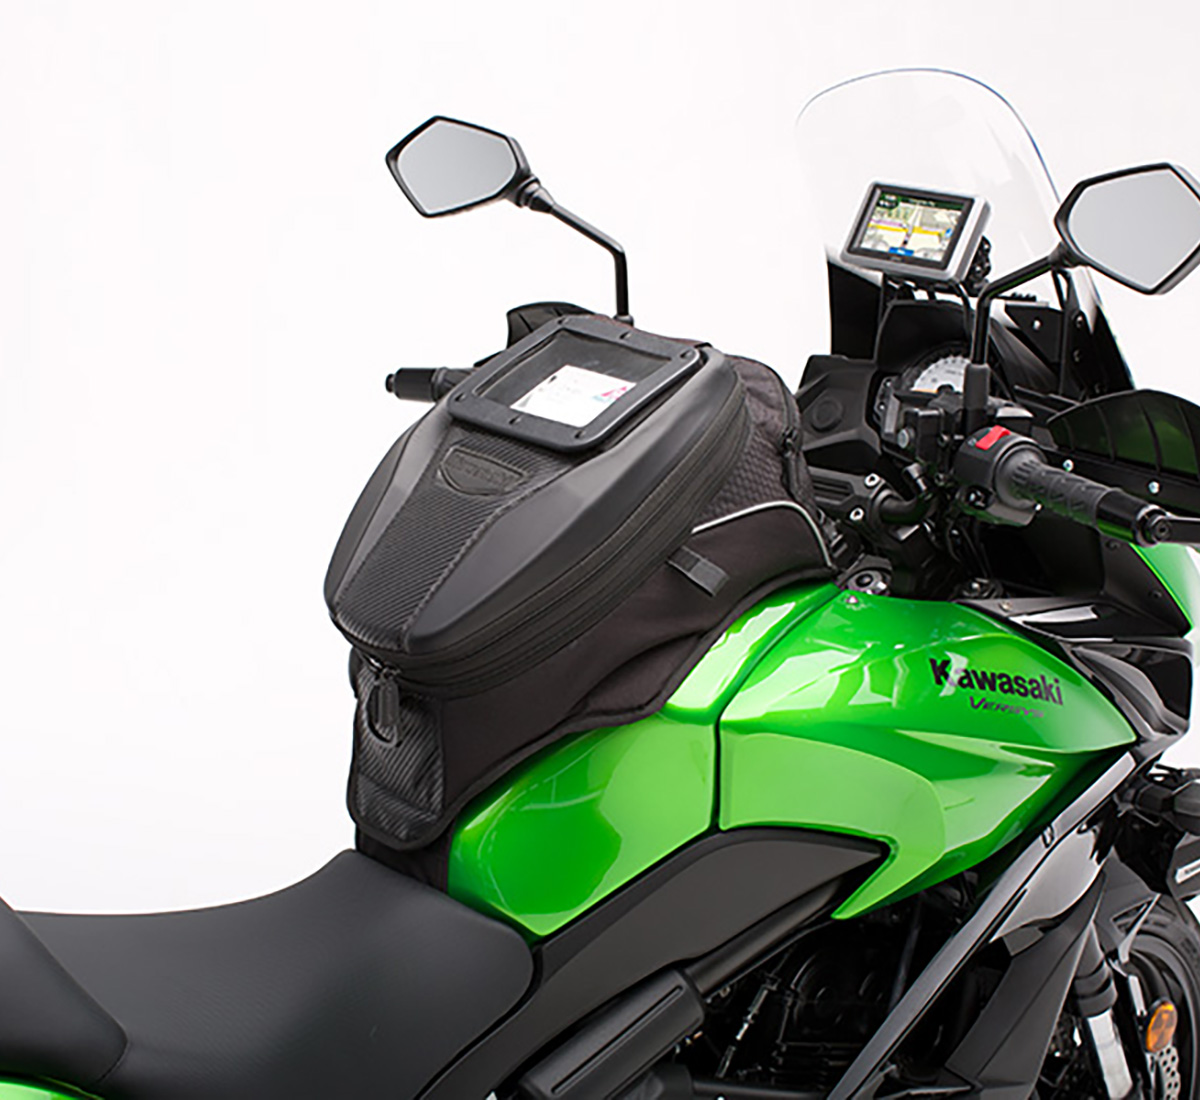 small resolution of 2018 versys 650 lt versys motorcycle by kawasaki rh kawasaki com 2018 kawasaki versys 650 2015